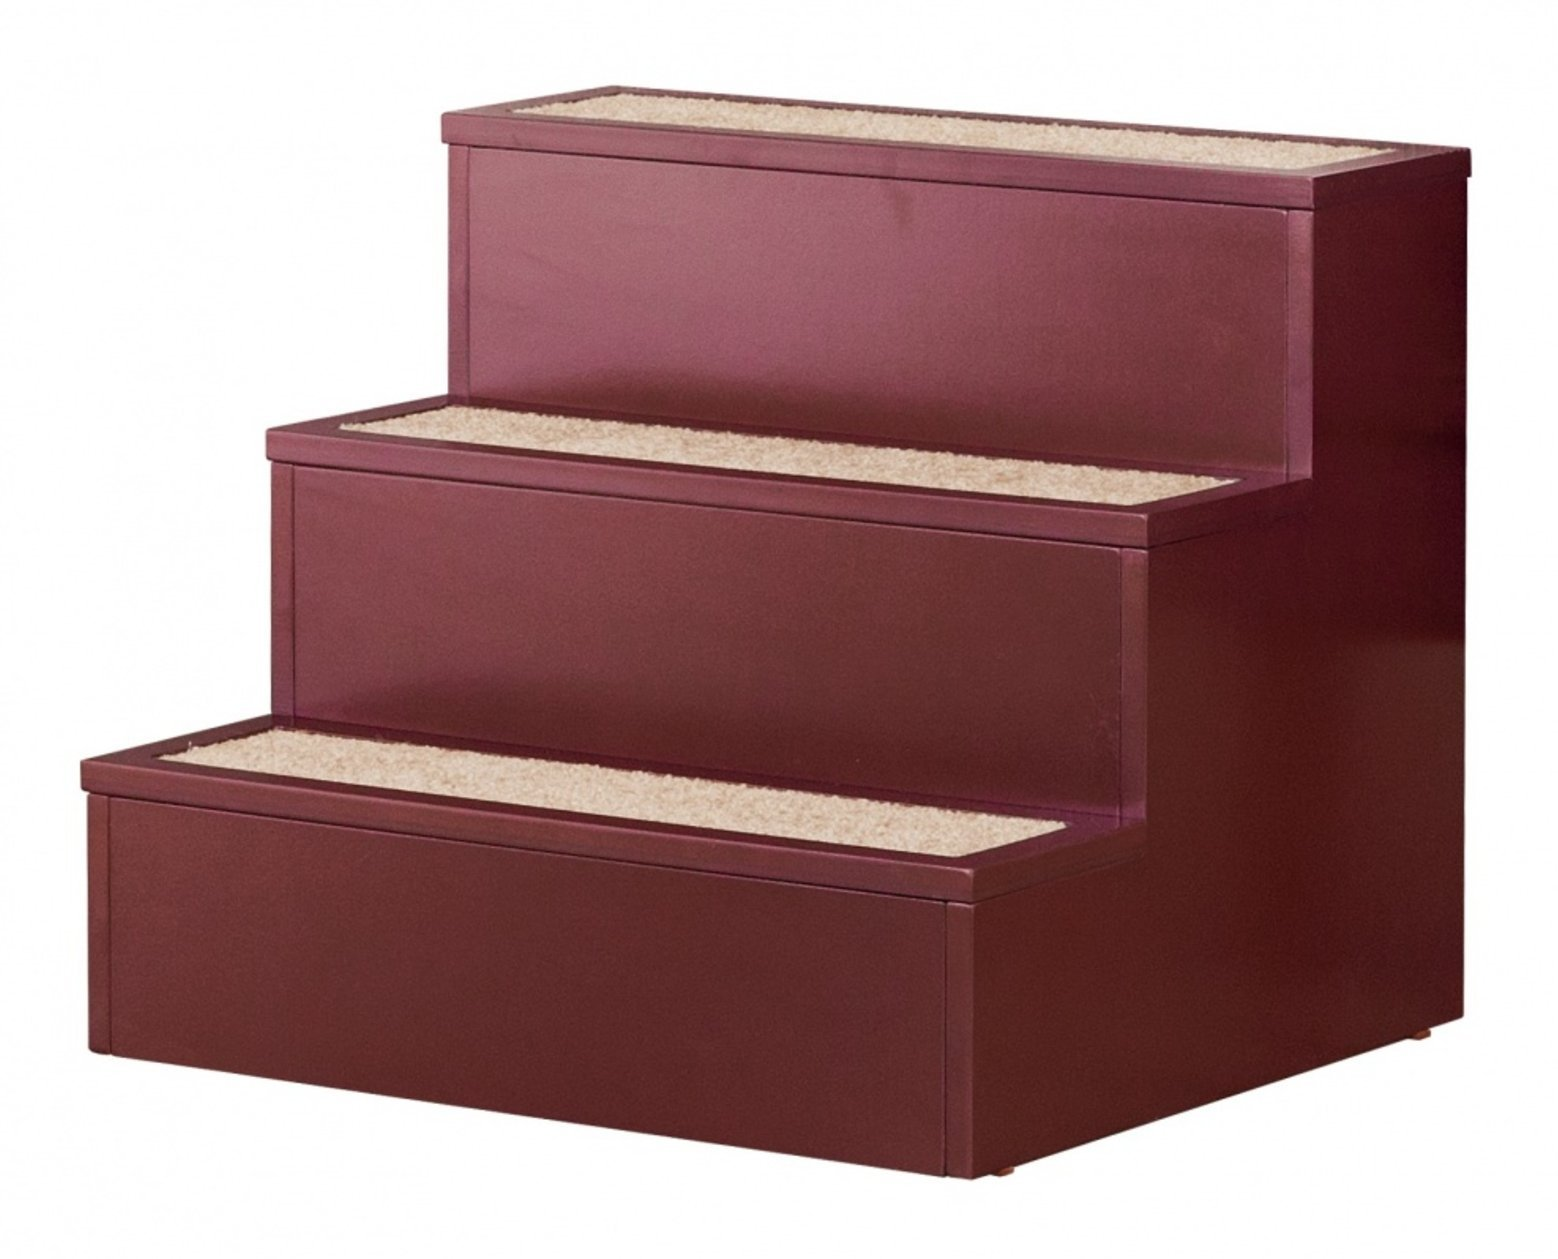 Trixie Pet Products Pet Stair Stairs. by Trixie